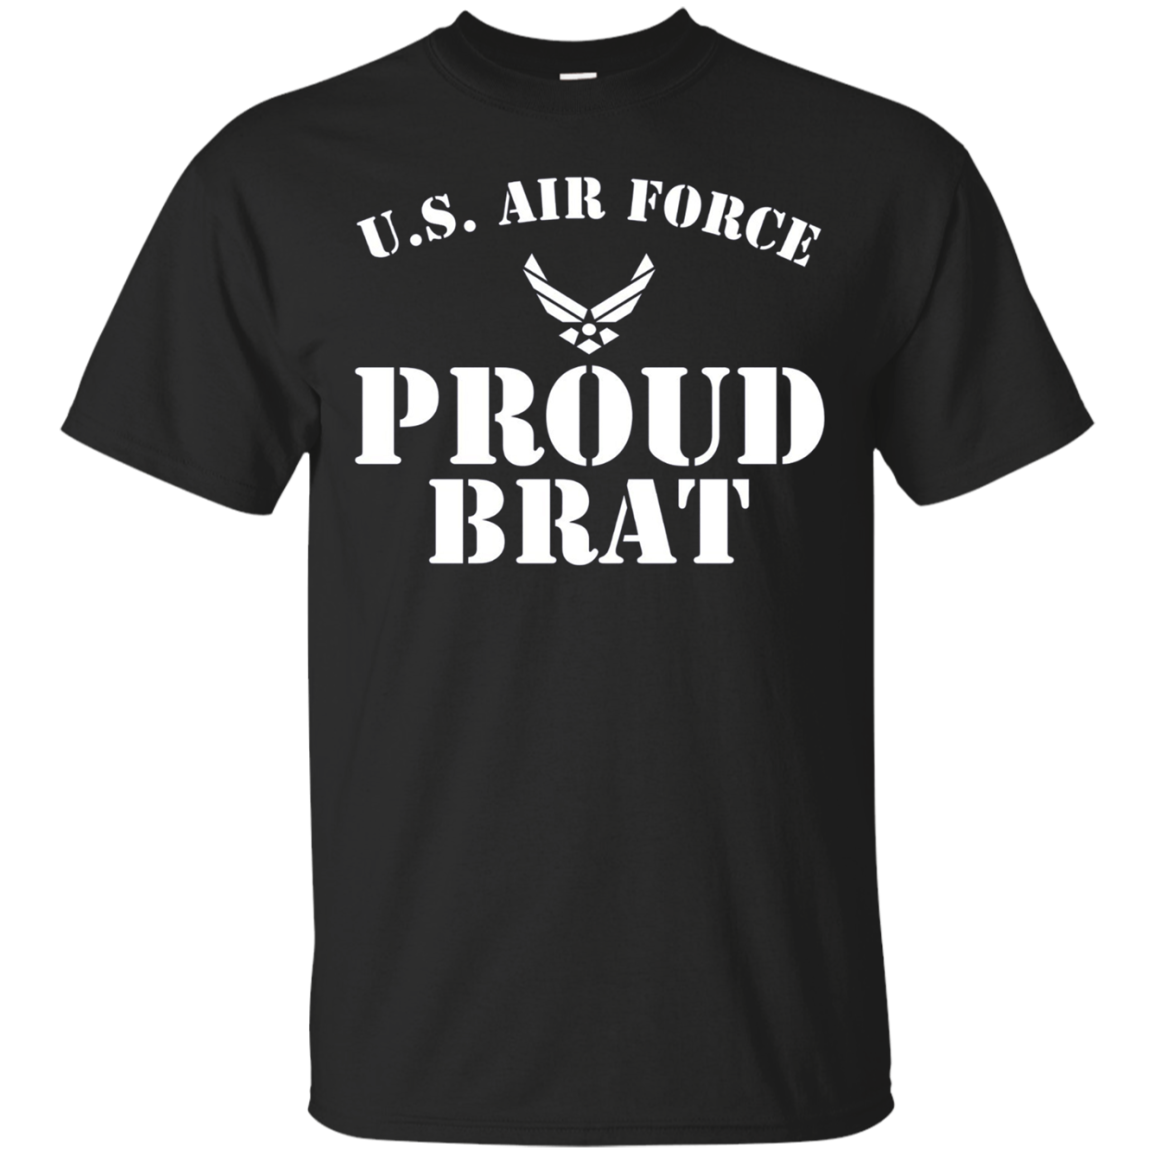 Pride Military - Proud U.S. Air Force Brat Soldier T-shirt